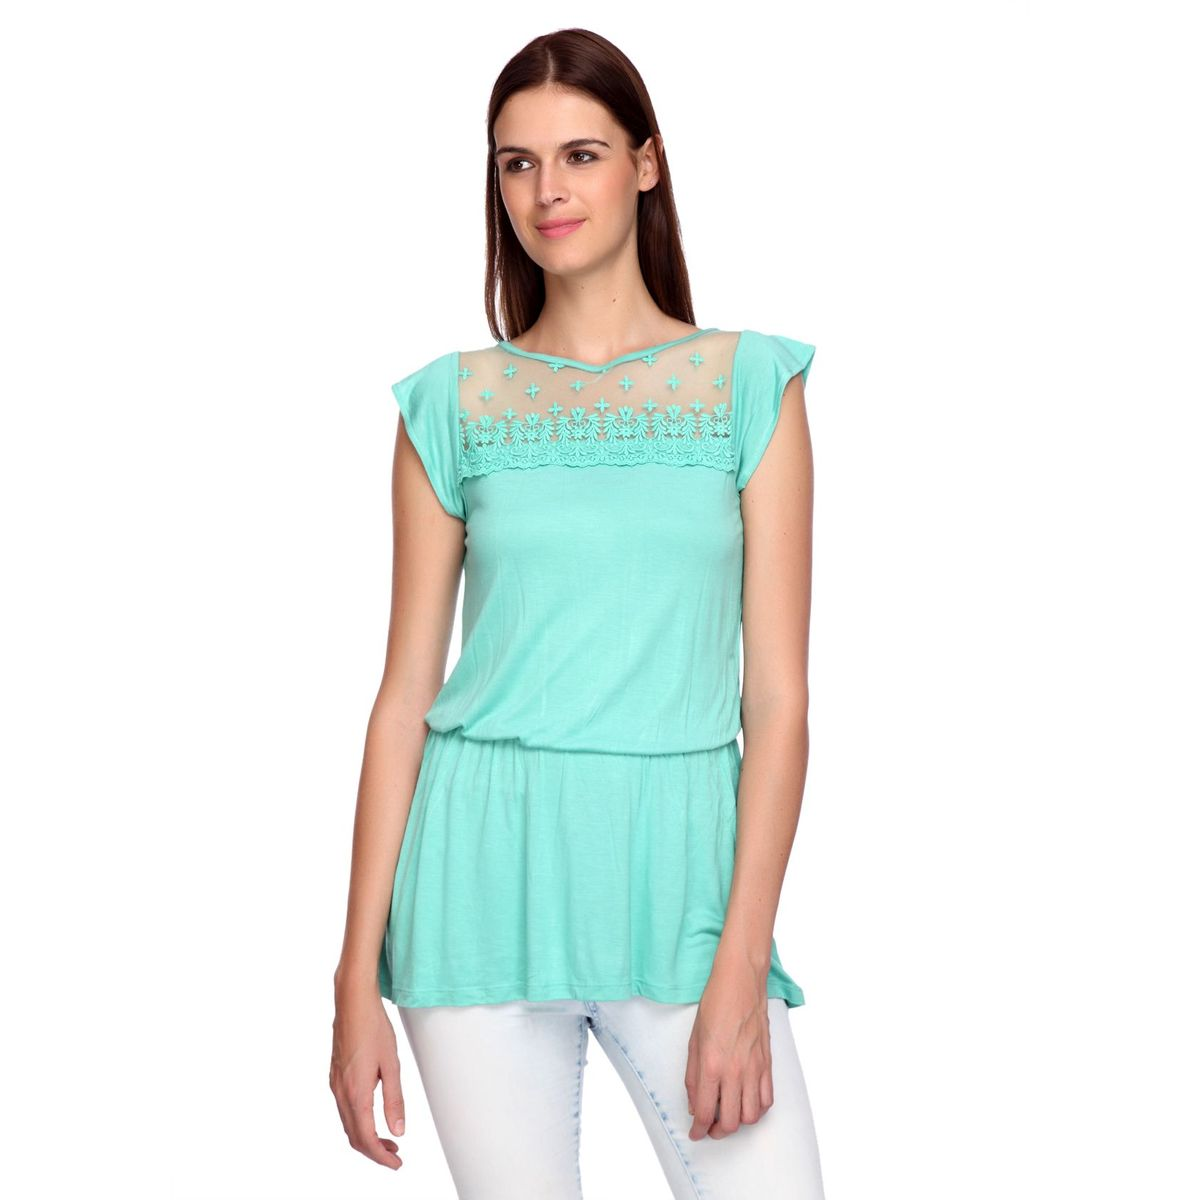 KATIE FRONT YOKE LACE TOP